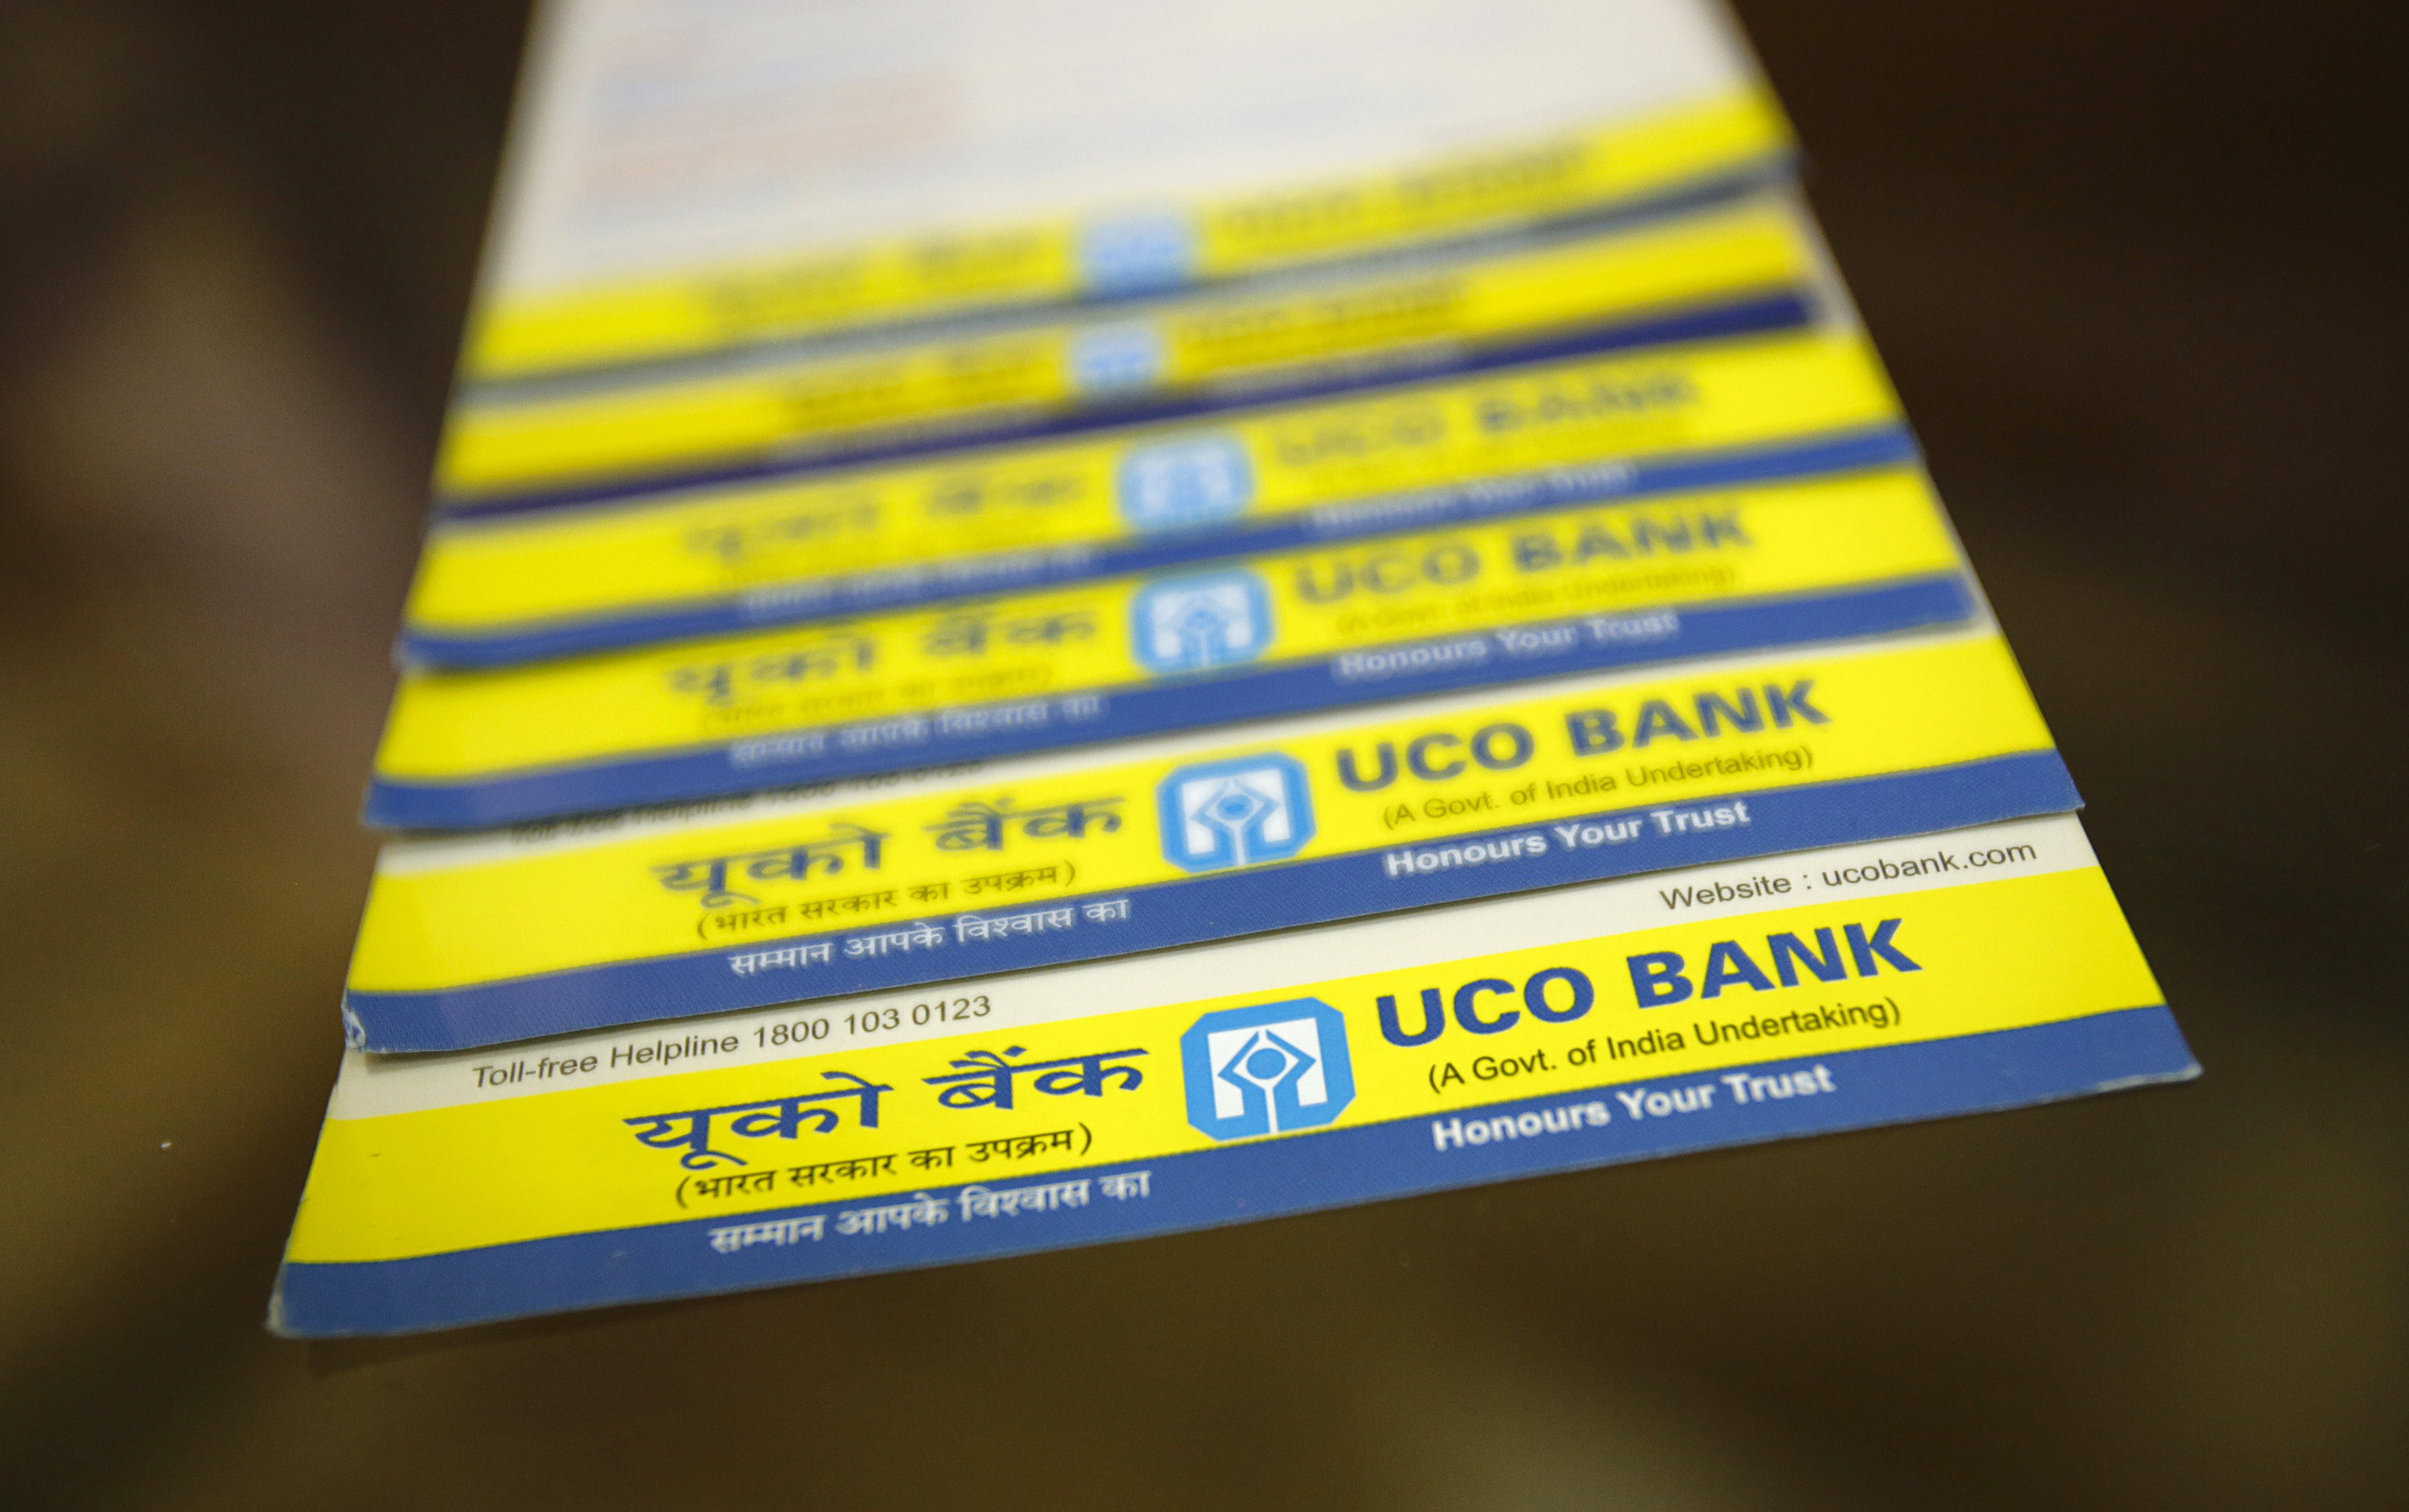 Leaflets advertising loans are pictured inside a commercial branch of the UCO Bank in Mumbai June 1, 2013. REUTERS/Vivek Prakash (INDIA - Tags: BUSINESS)